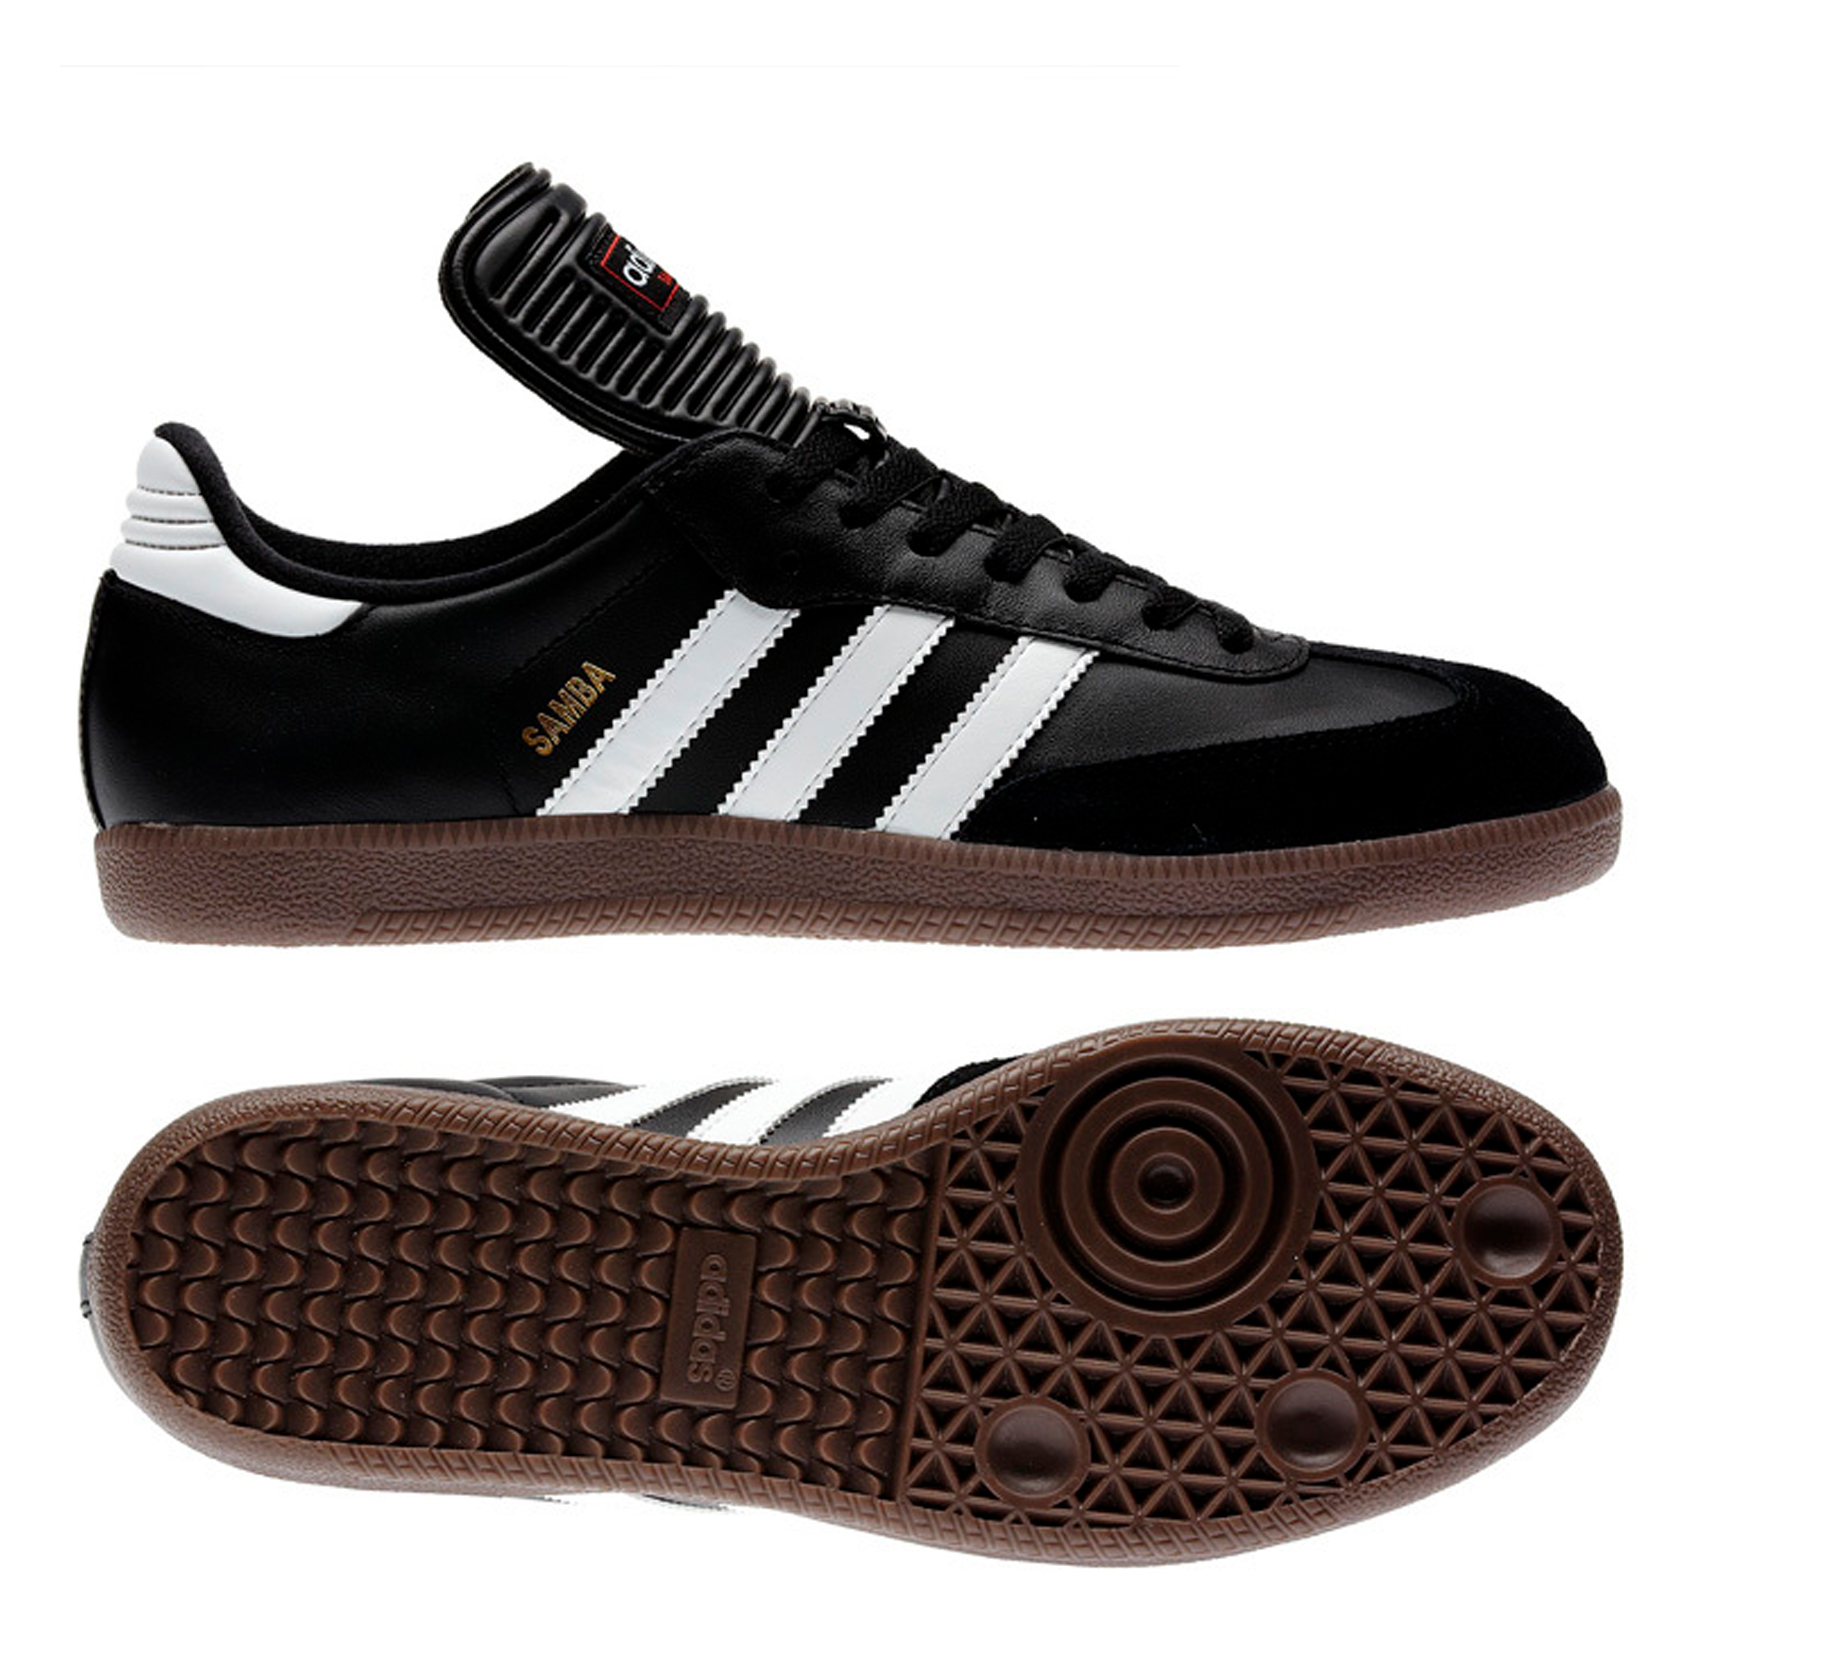 7a744fe0 ADIDAS formed by Adolf Dassler after feud with brother Rudolf who then went  on to form Puma.